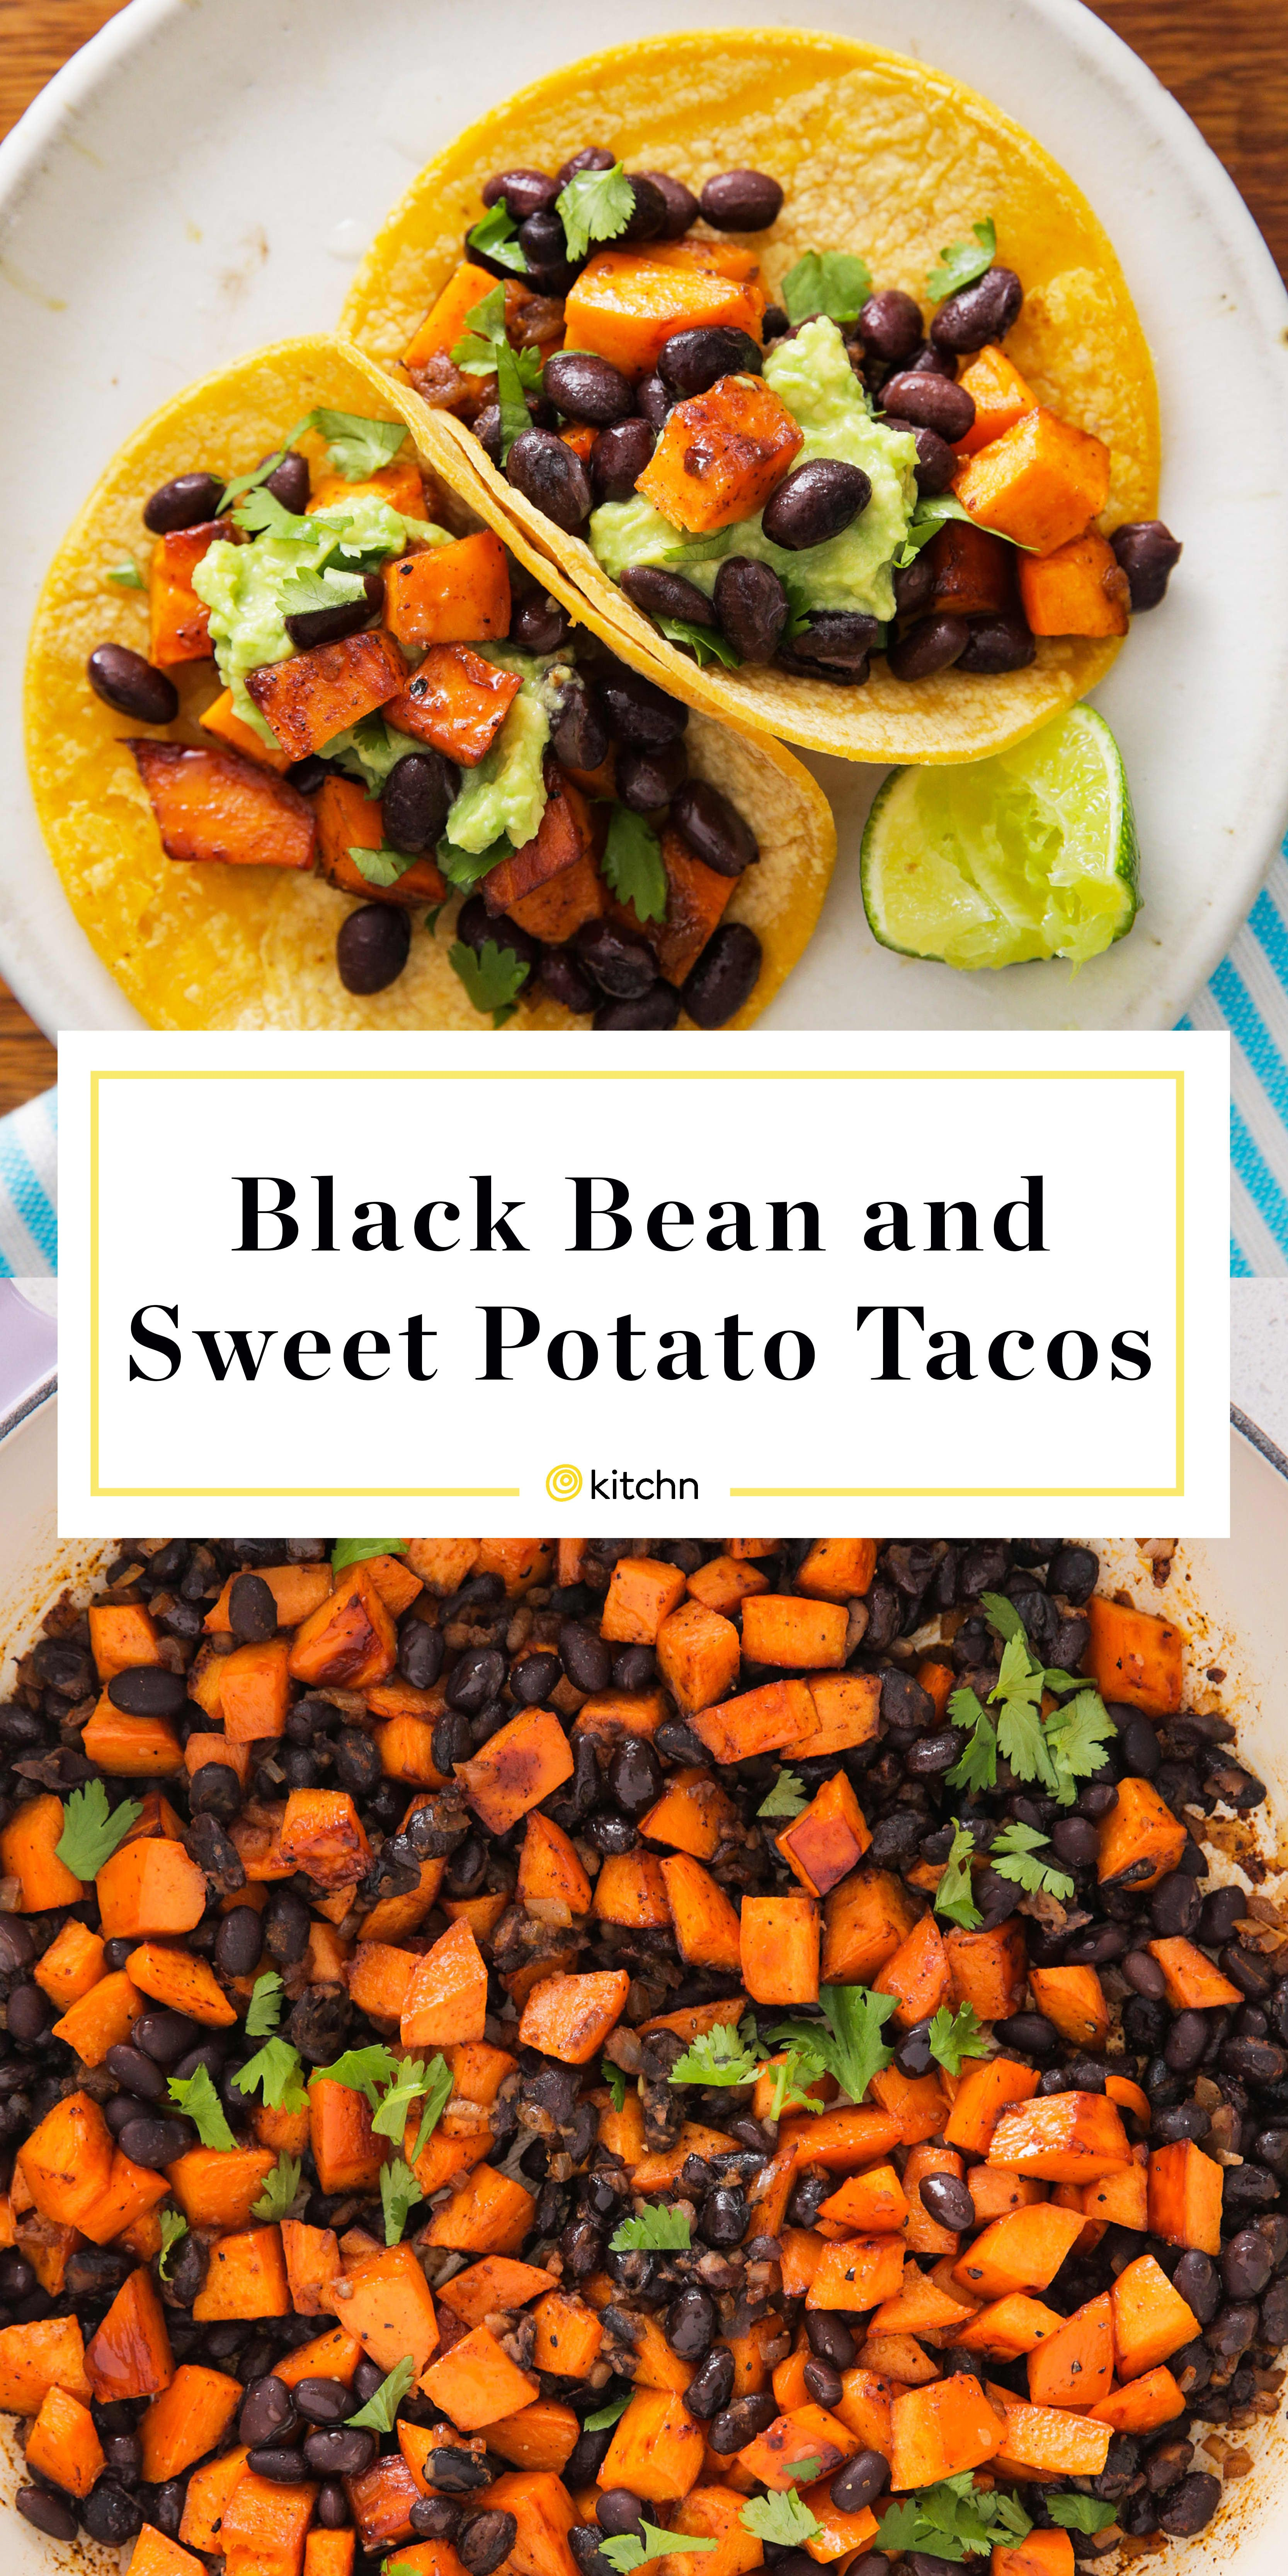 Recipe: Black Bean and Sweet Potato Tacos